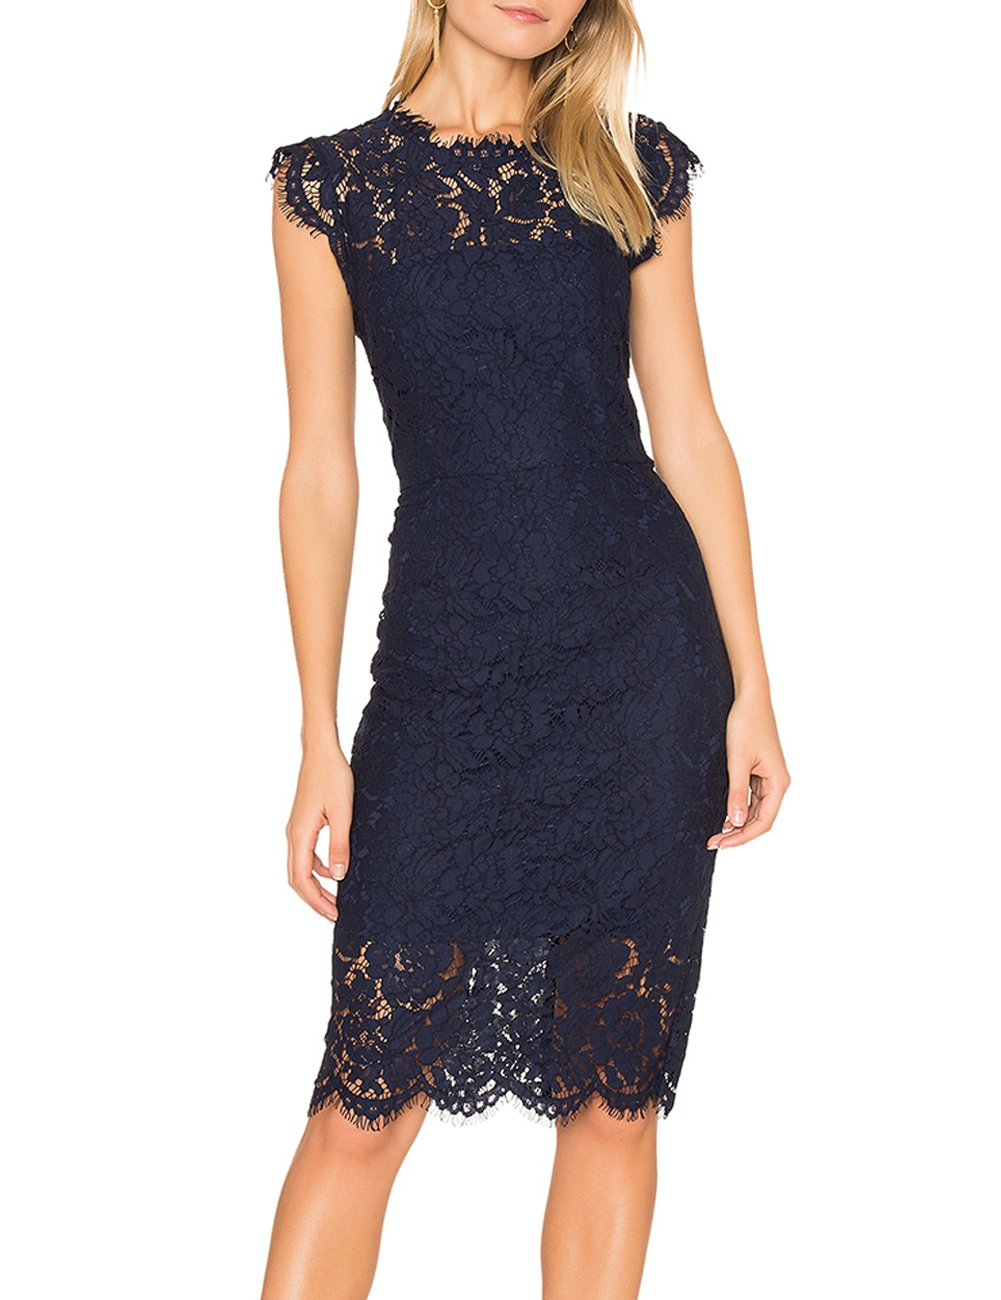 Party Dresses - Women's Sleeveless Lace Floral Elegant Cocktail Dress Crew Neck Knee Length For Party